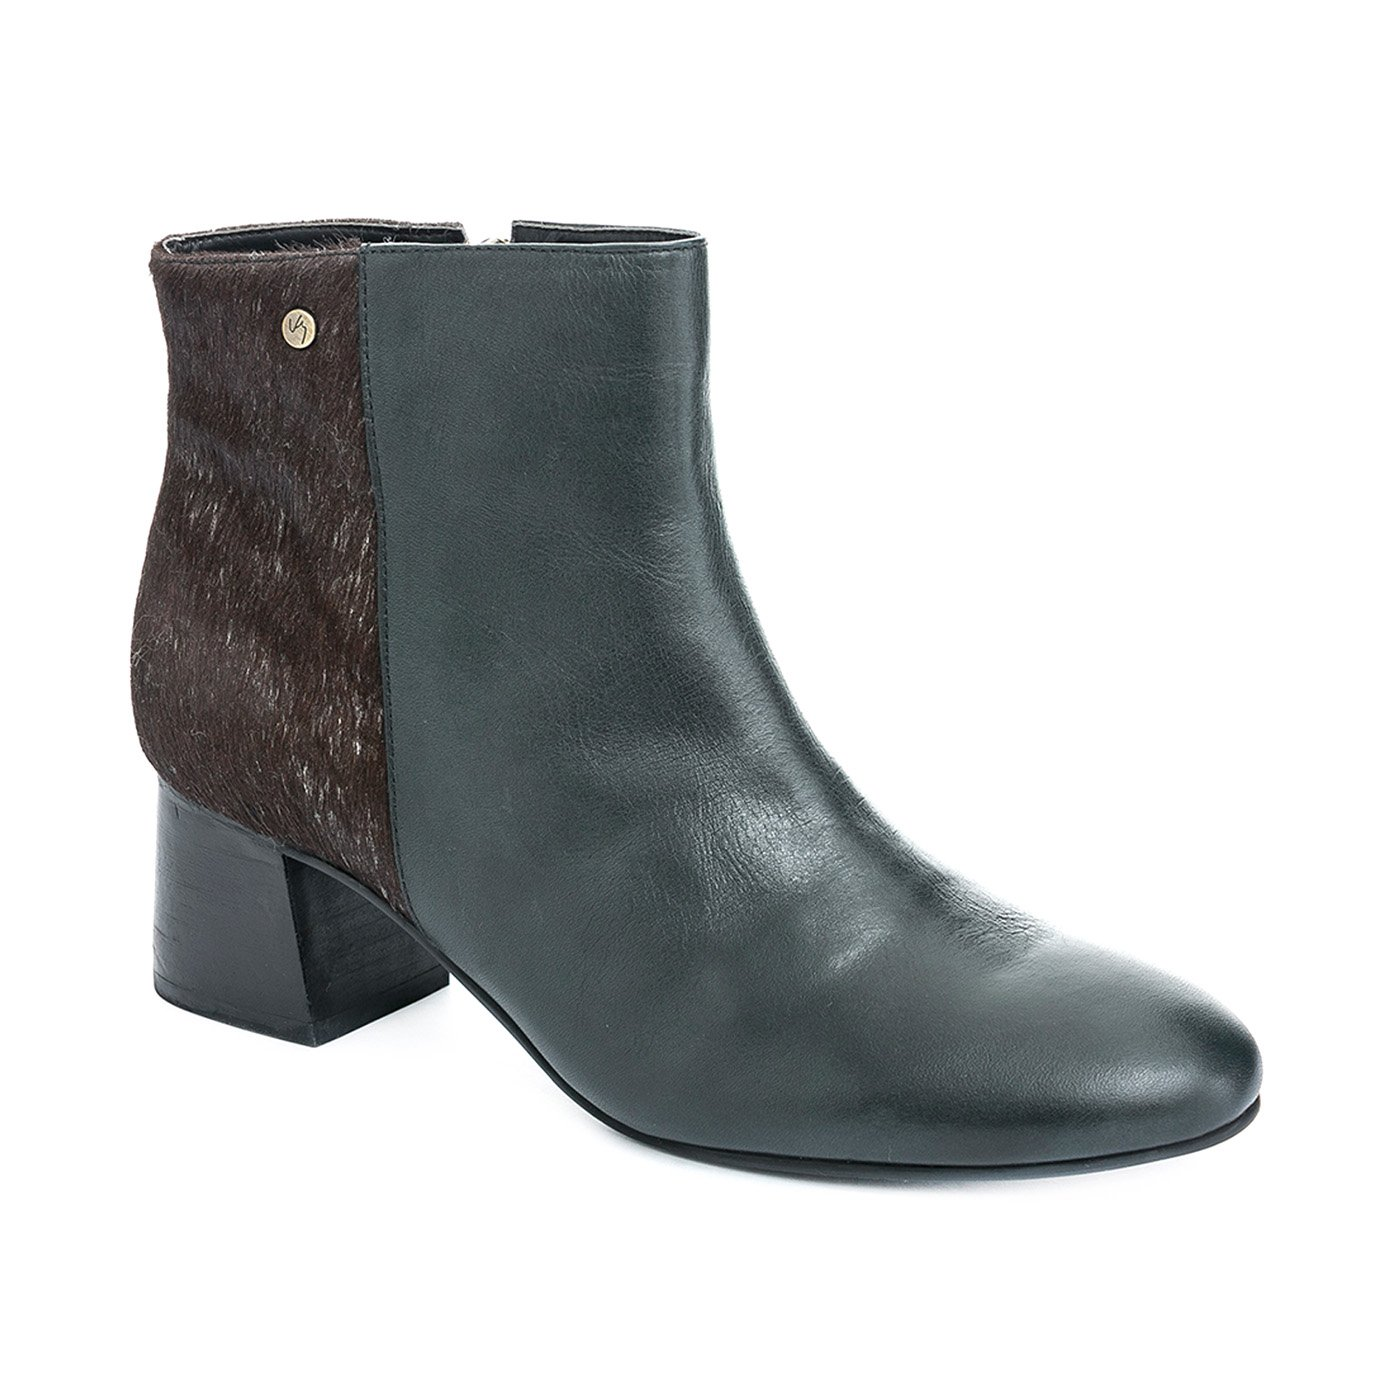 Amazon.com: VELEZ Women Genuine Colombian Leather Ankle Boots | Botas de Cuero Colombianas: Clothing